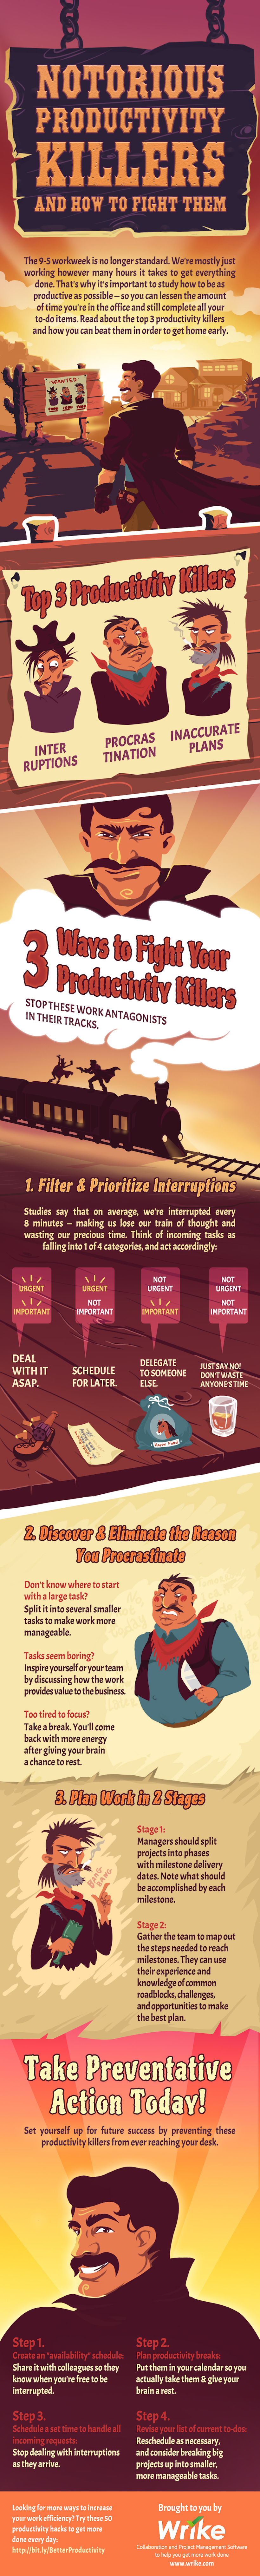 3 Notorious Productivity Killers and How to Fight Them (#Infographic)